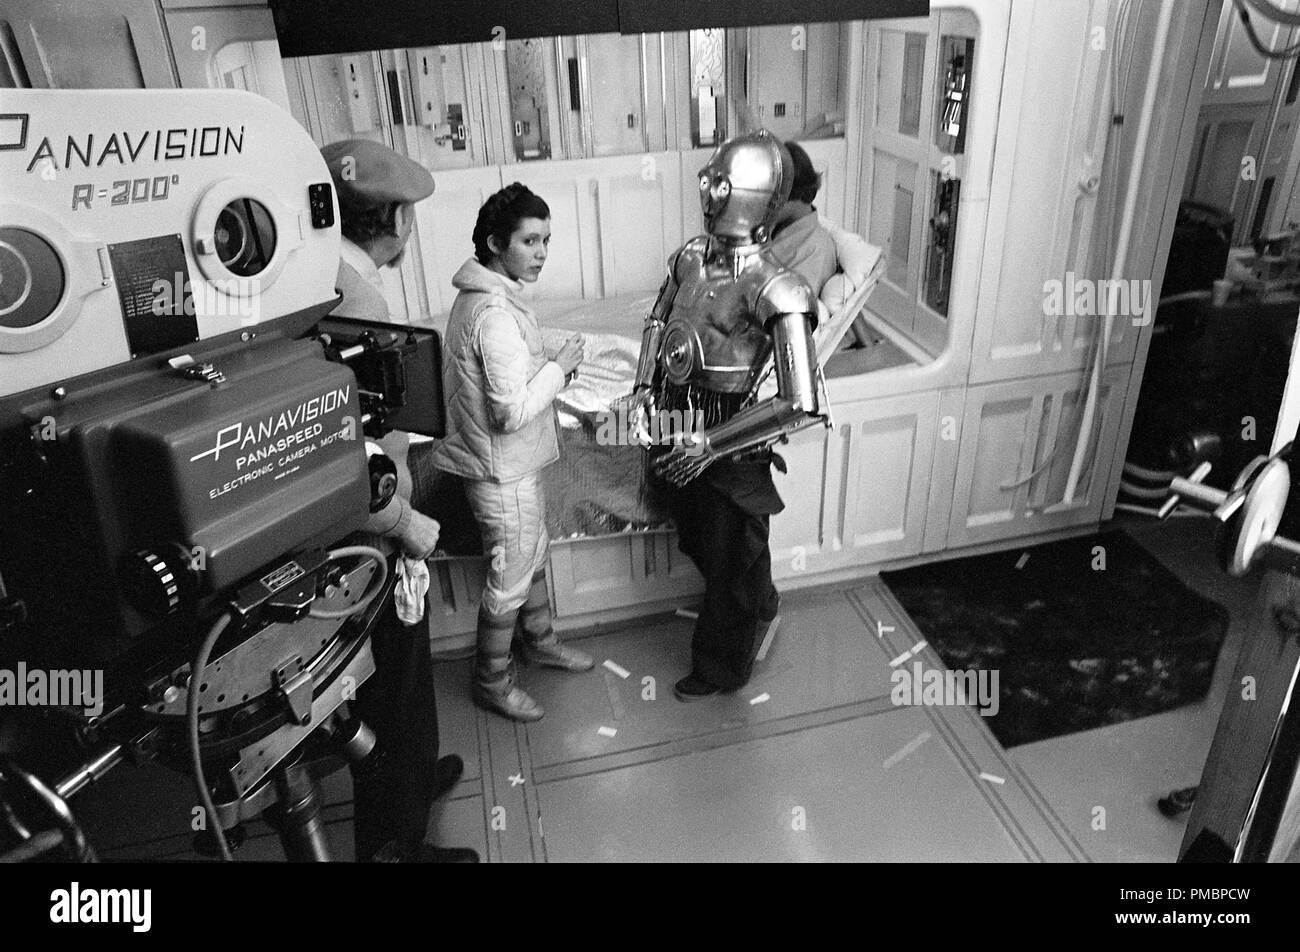 Irvin Kershner talks with Carrie Fisher, Anthony Daniels and Mark Hamill in 'Star Wars Episode V: The Empire Strikes Back' (1980)  File Reference # 32603_424THA - Stock Image